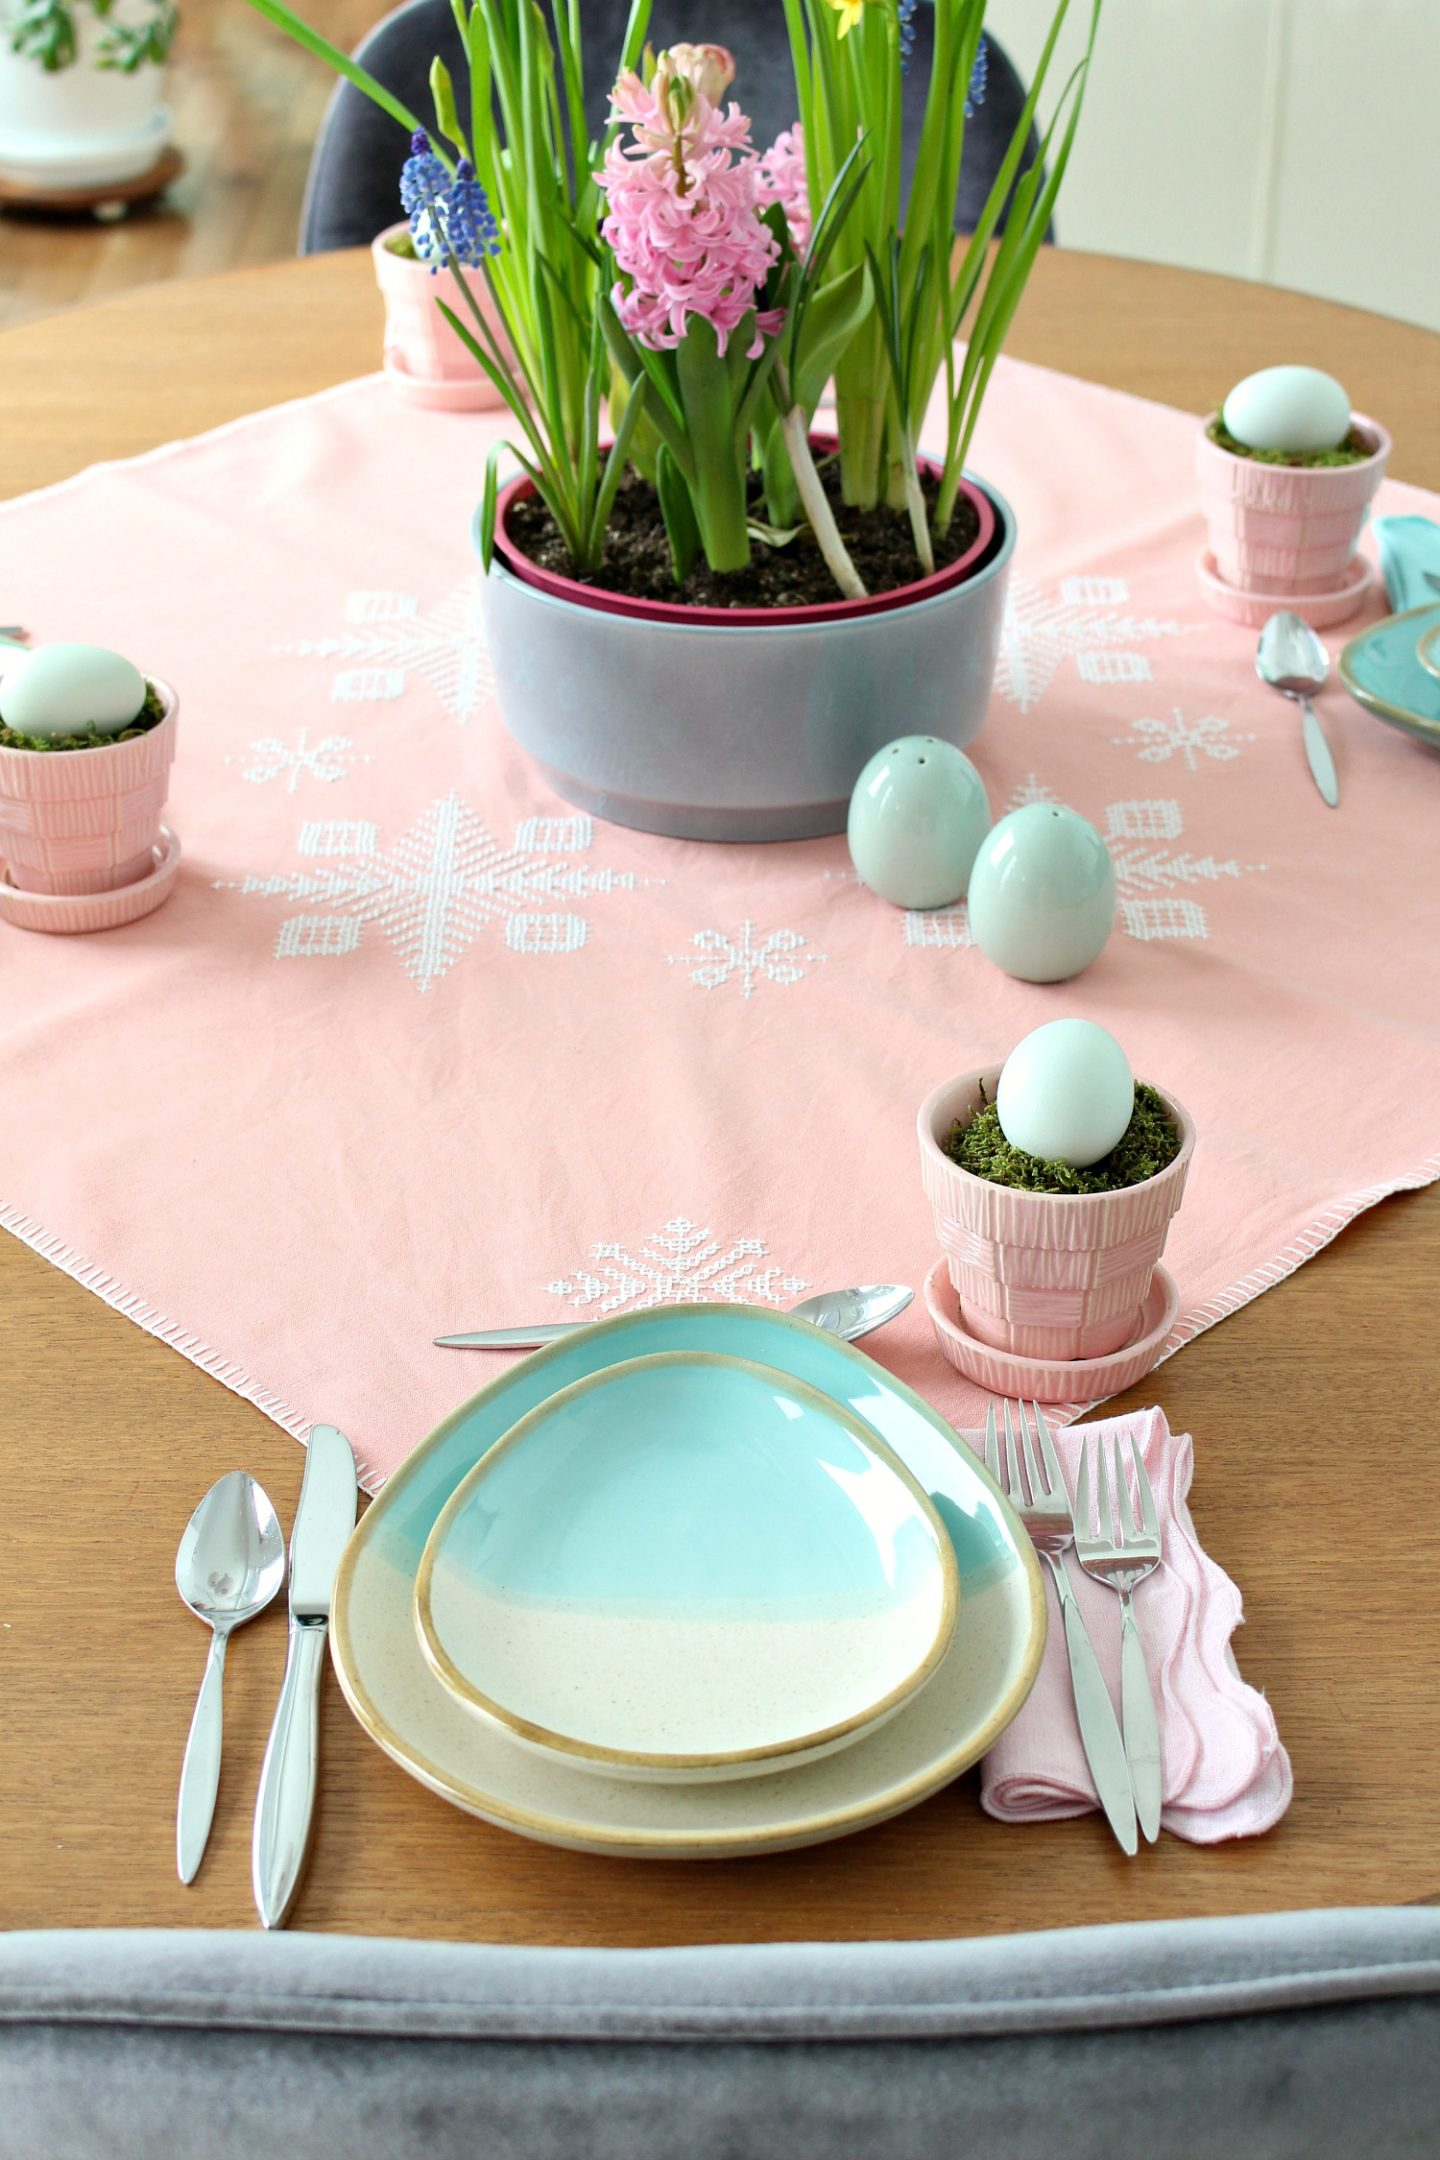 turquoise egg shaped plates